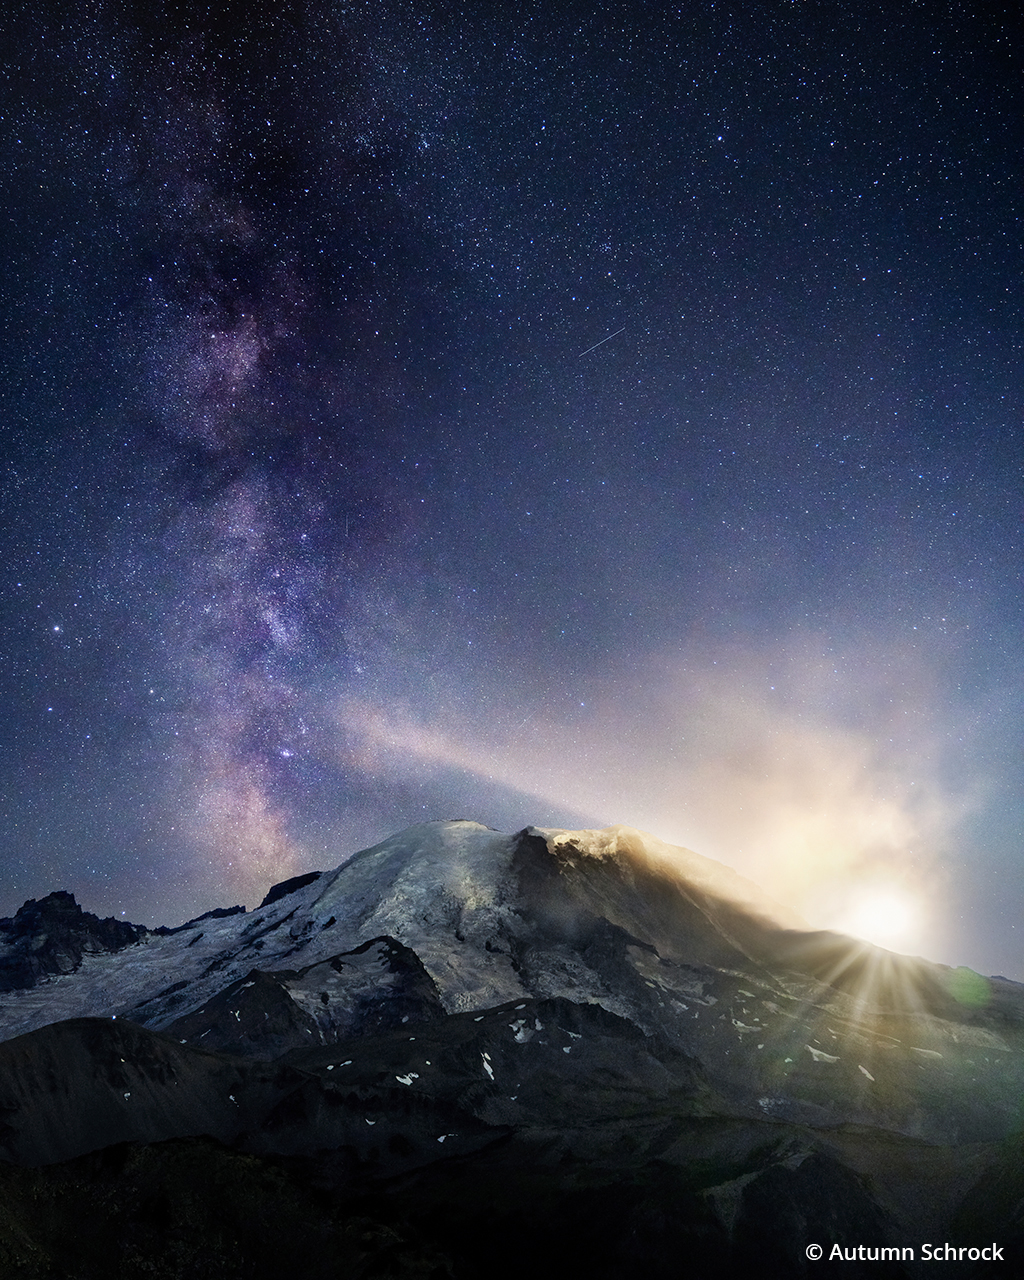 Photograph of the moon and Milky Way at Mount Rainier National Park.